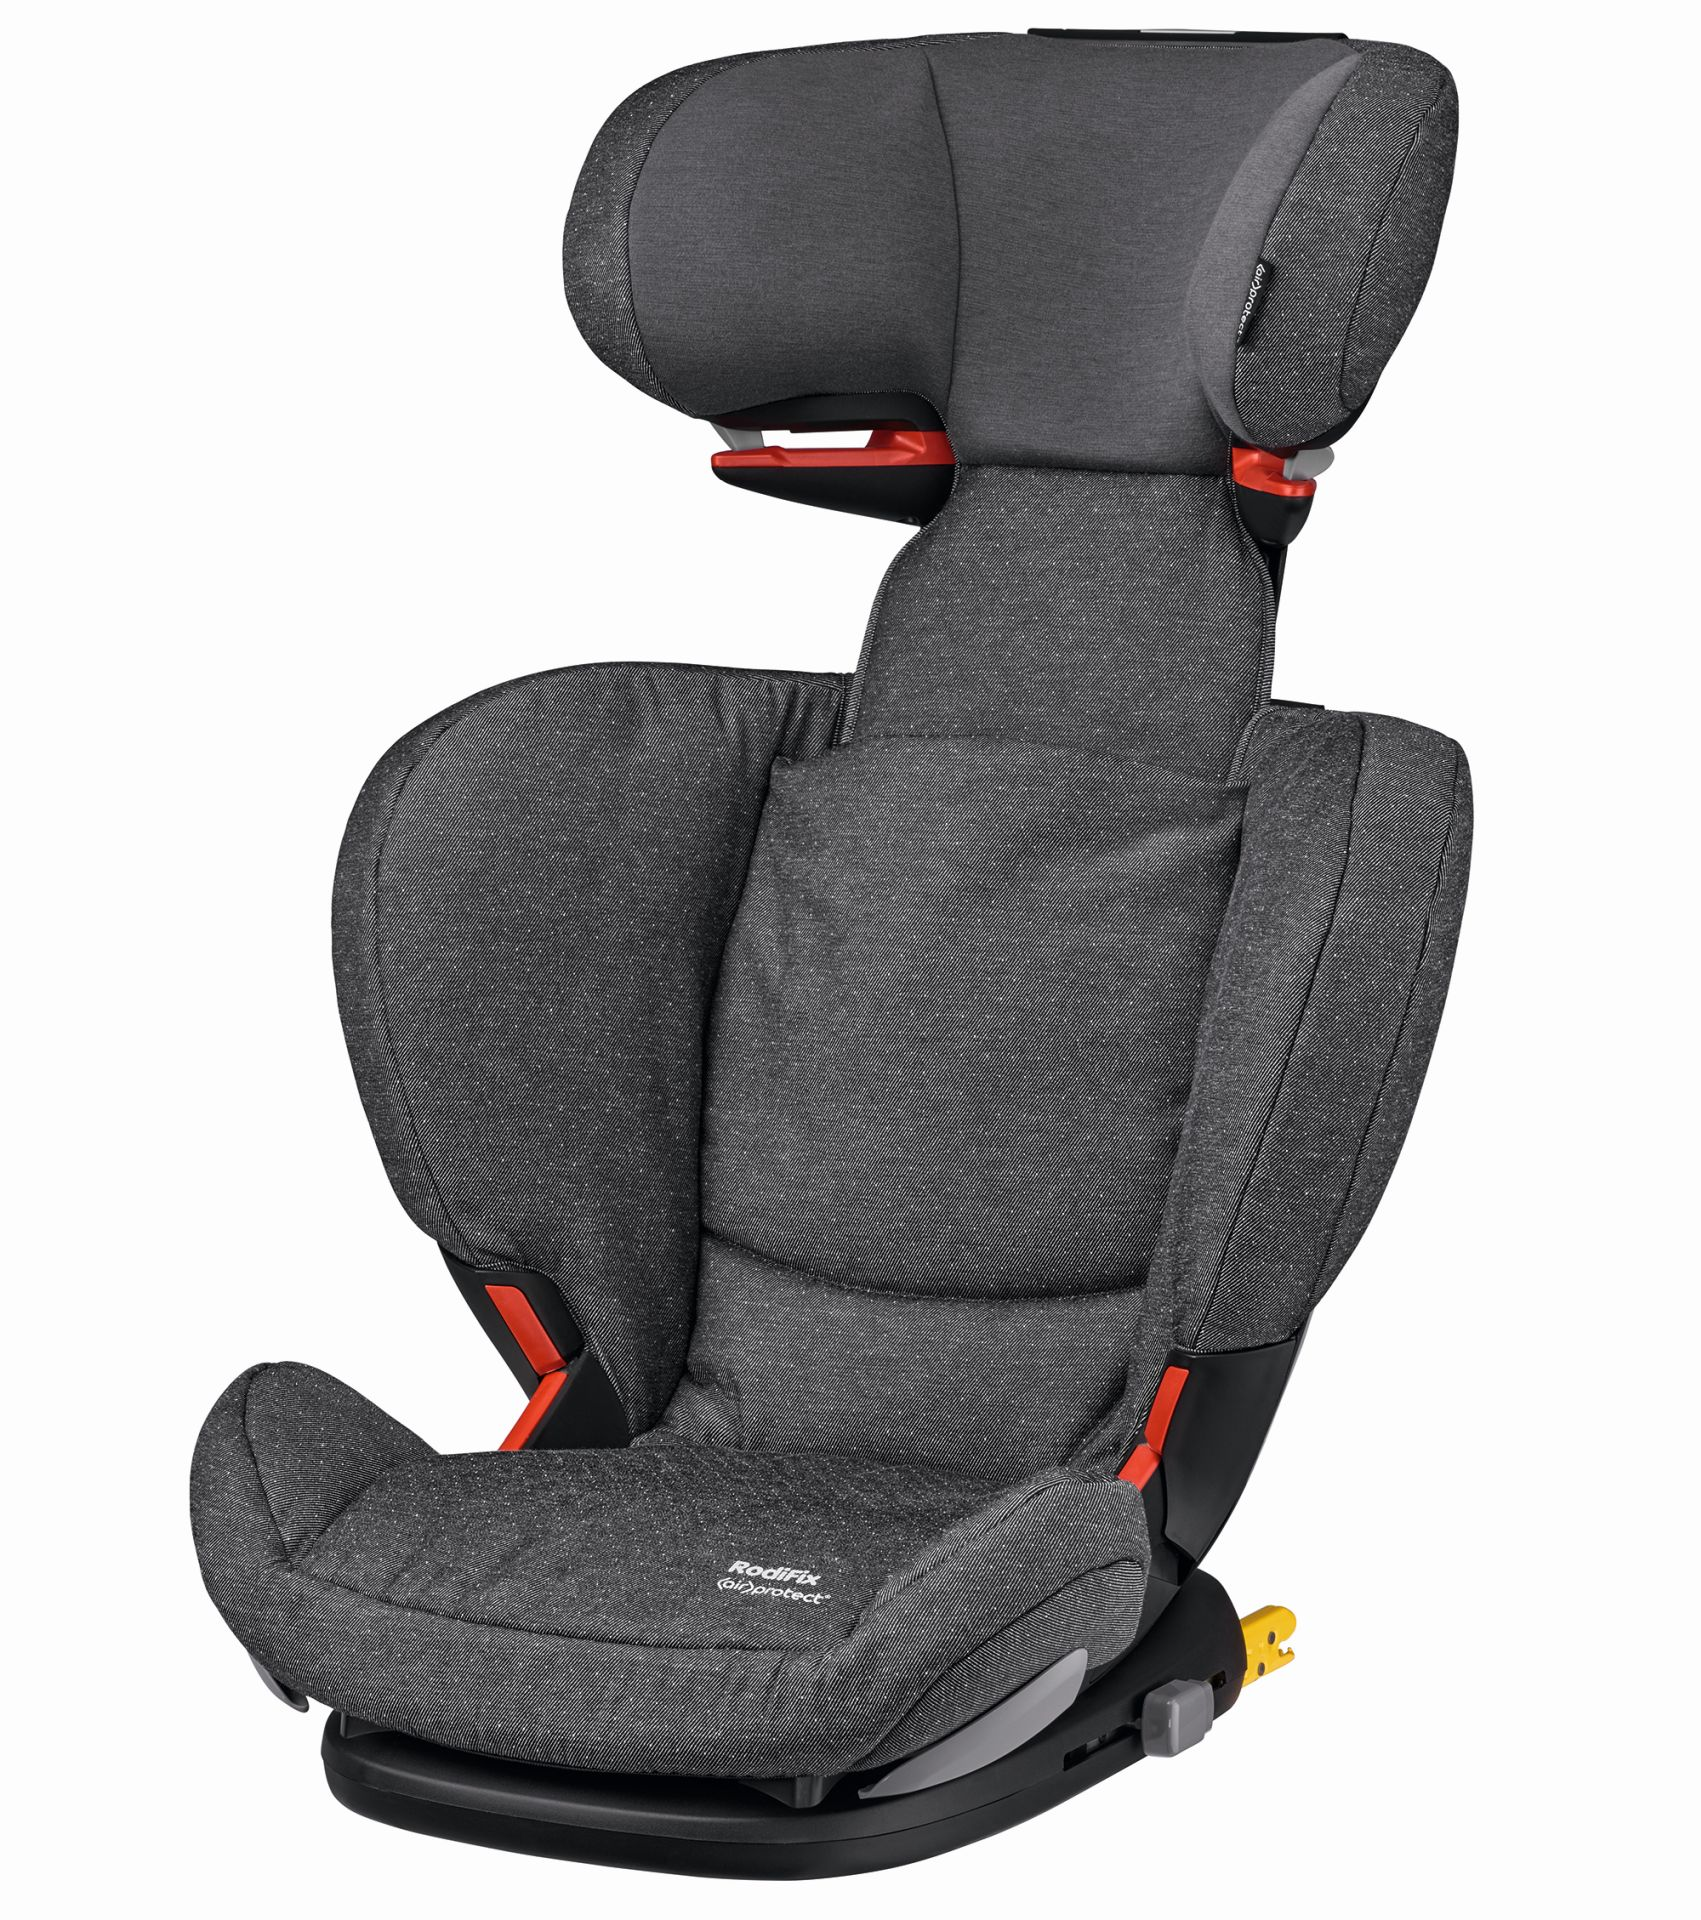 maxi cosi child car seat rodifix airprotect buy at. Black Bedroom Furniture Sets. Home Design Ideas